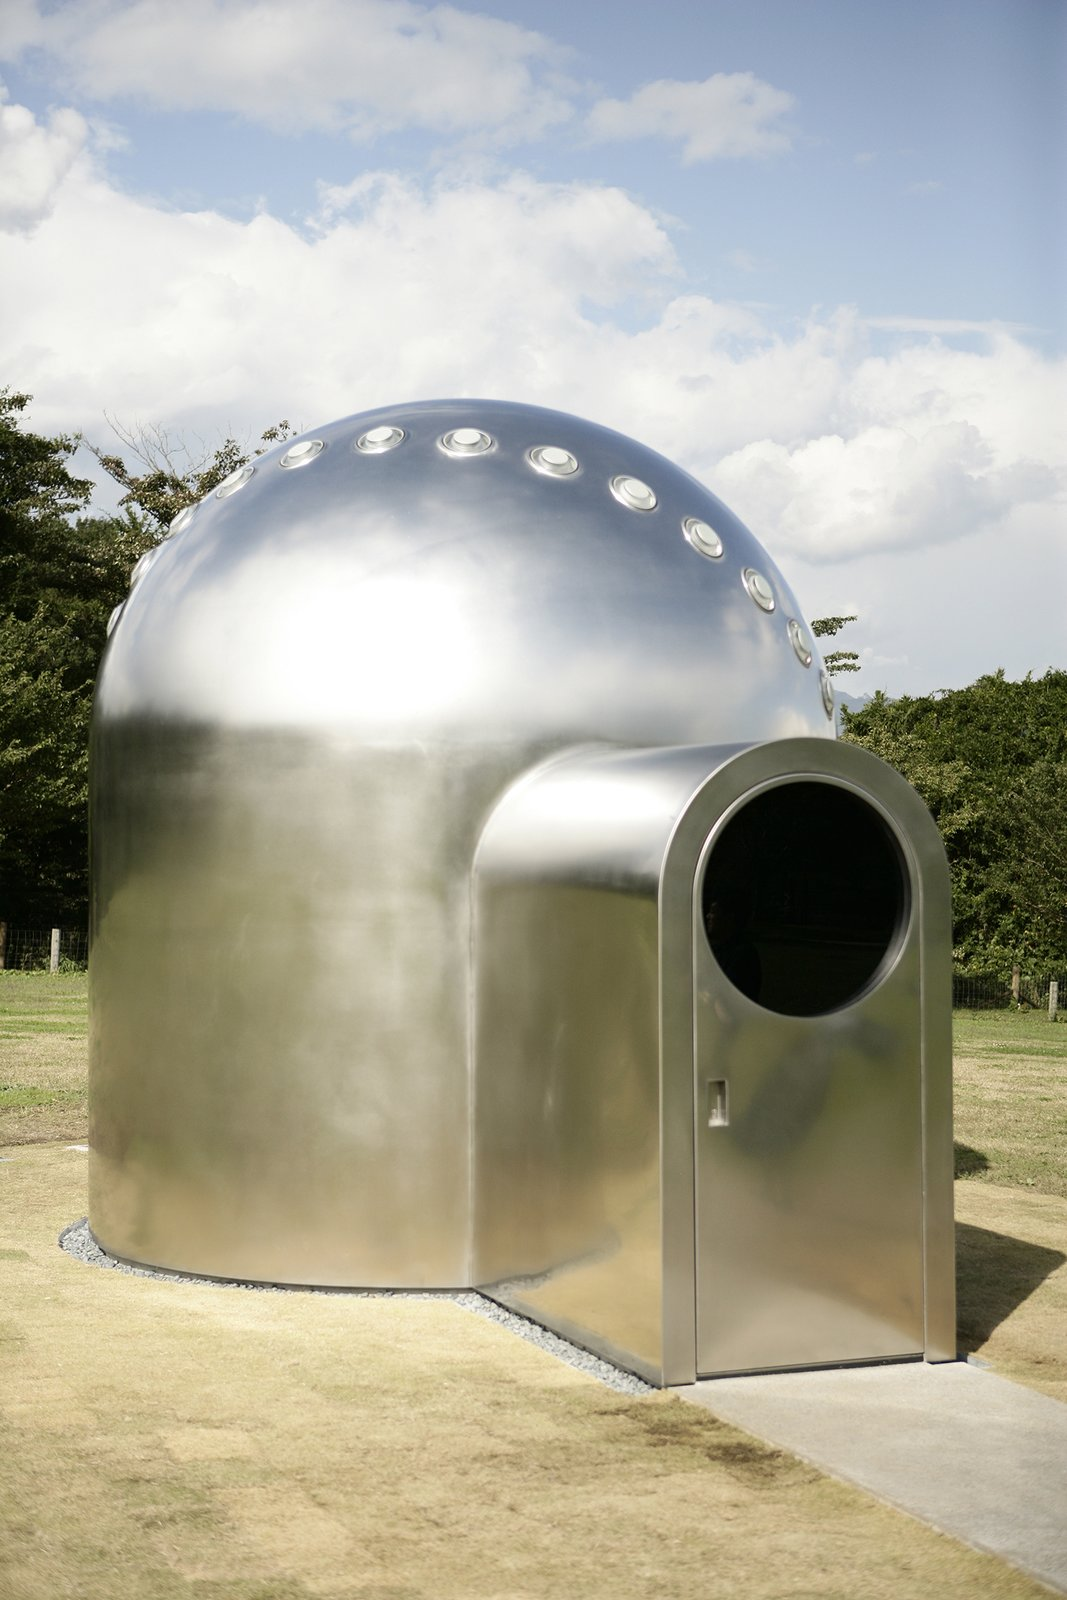 """""""Sunspace for Shibukawa,"""" Olafur Eliasson, 2009.  This stainless steel observatory, stationed in Shibukawa, Japan, contains a number of glass oculi that capture the movement of light throughout the day, creating varying projections in the interior.  Eight of Our Favorite Works by Artist Olafur Eliasson by Allie Weiss"""